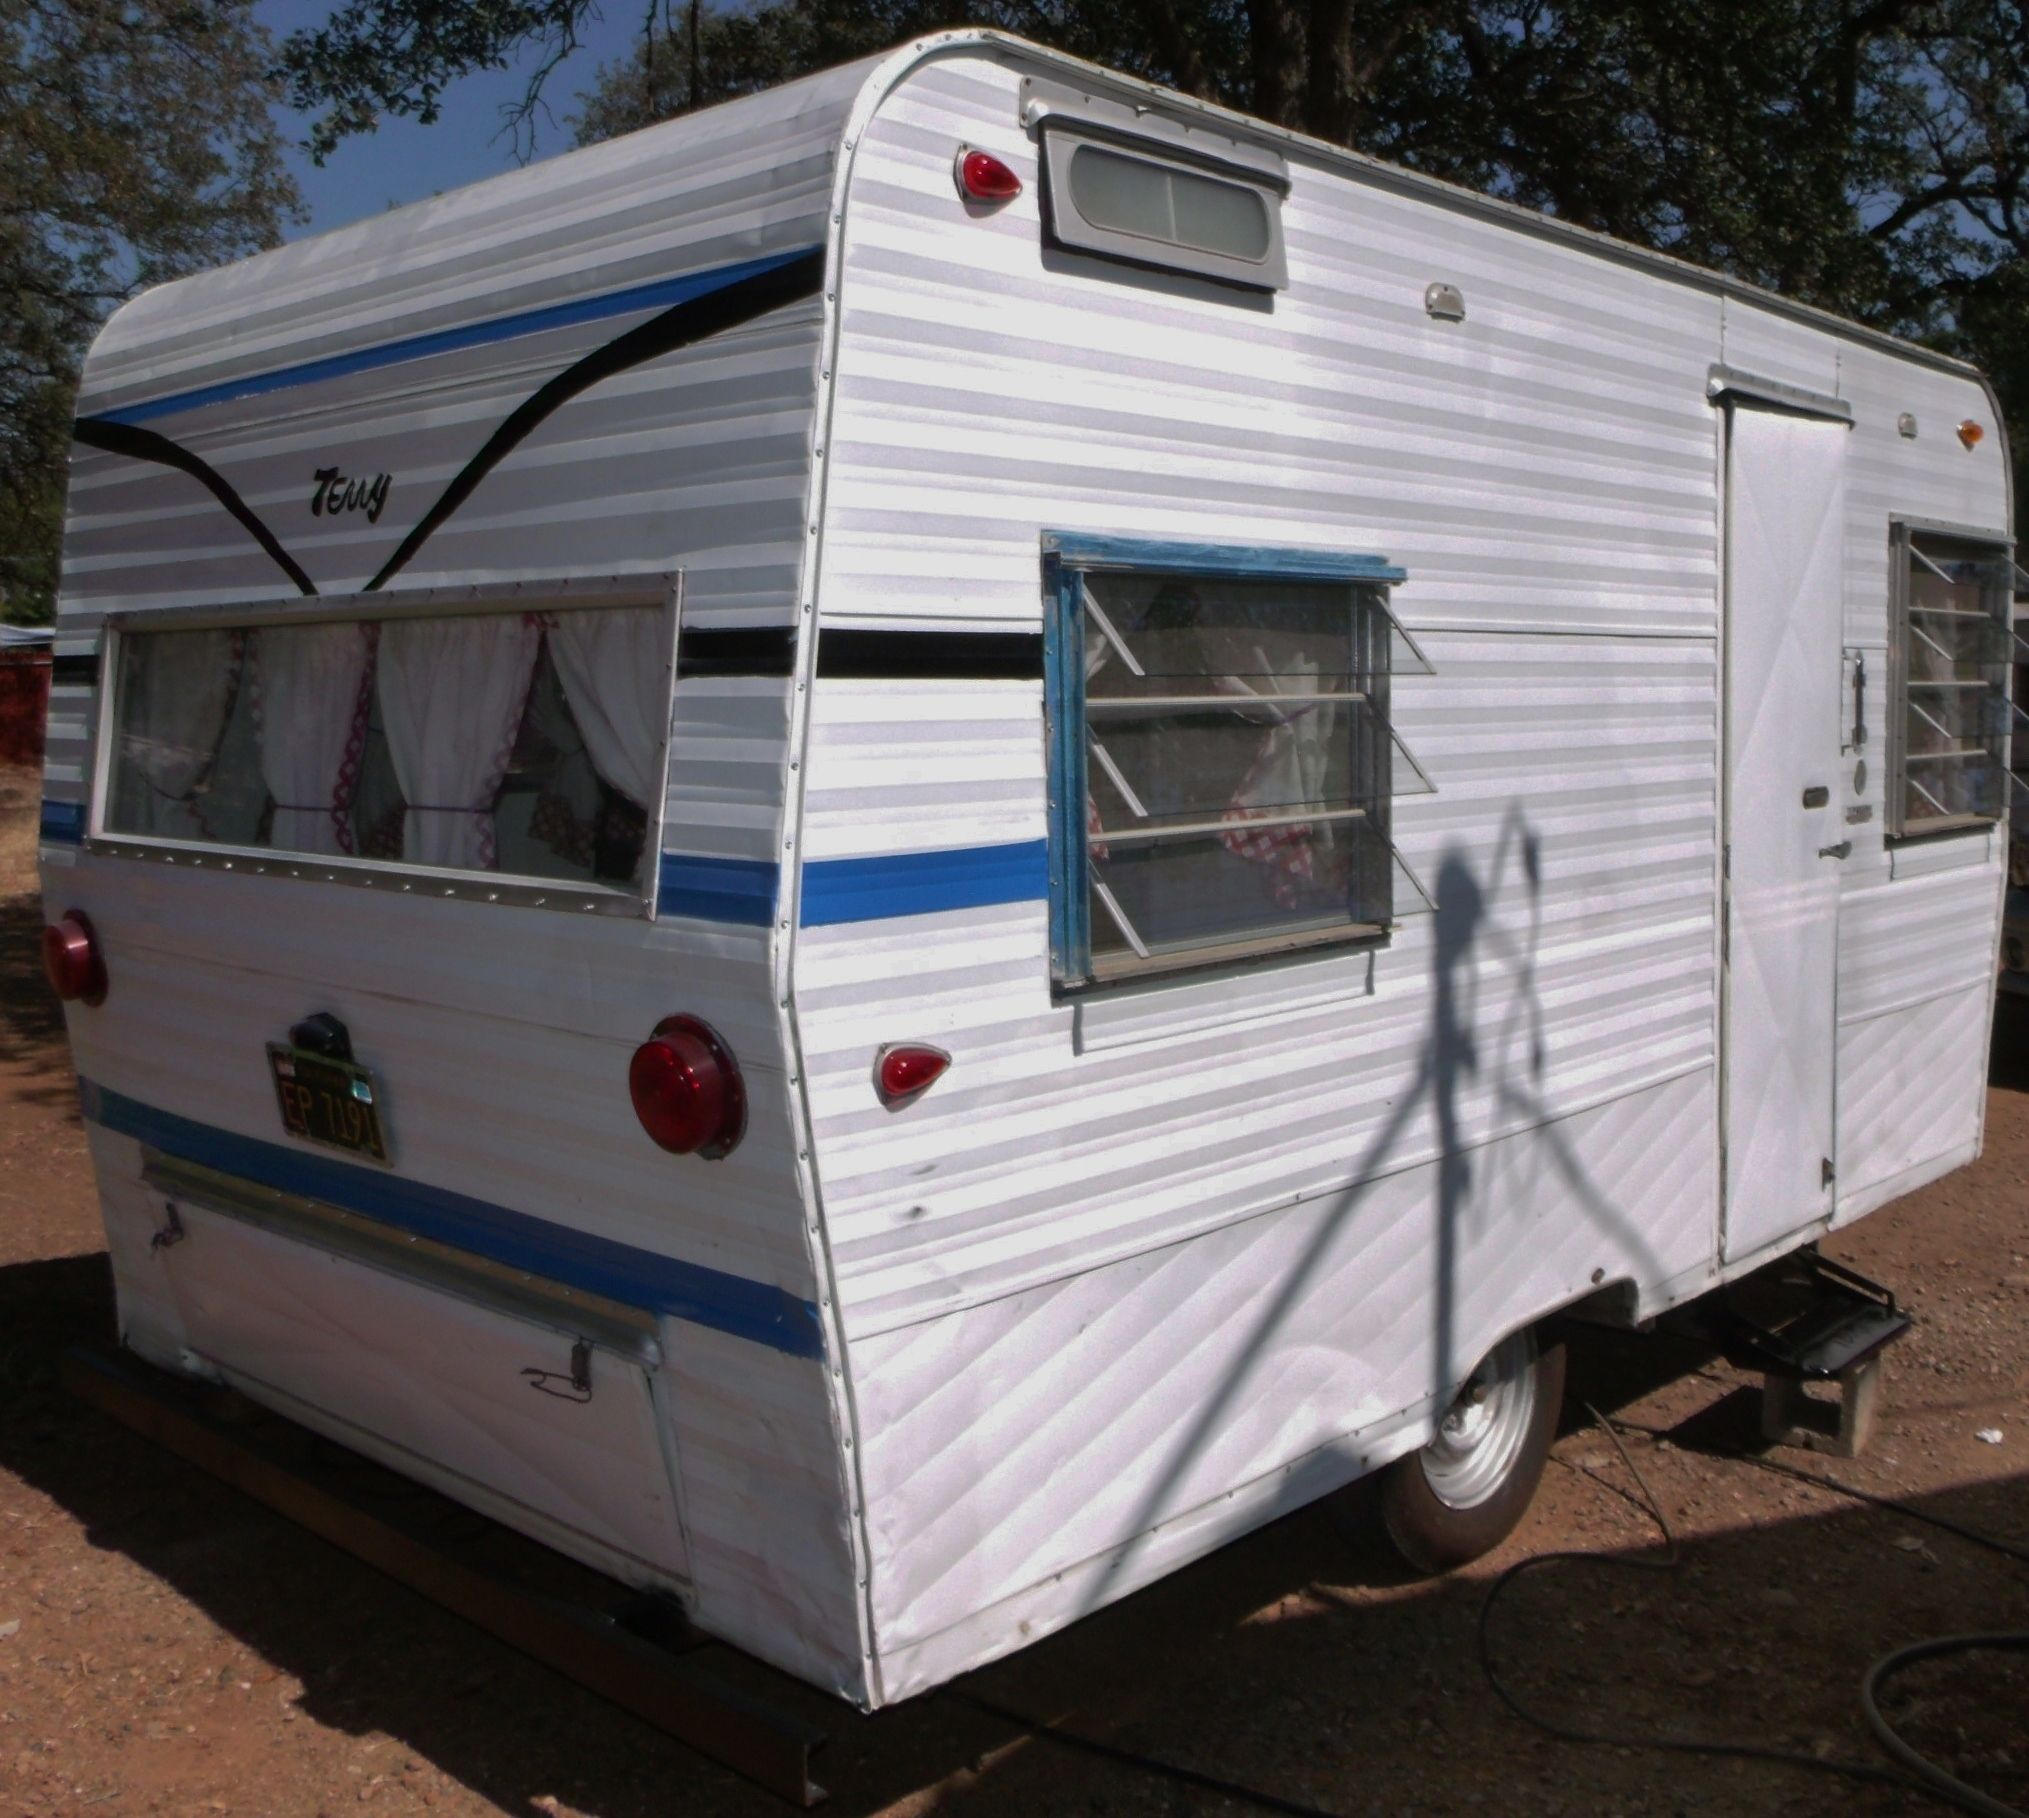 Travel Trailers With Outdoor Kitchens: VINTAGE TRAVEL TRAILERS WE HAVE RESTORED